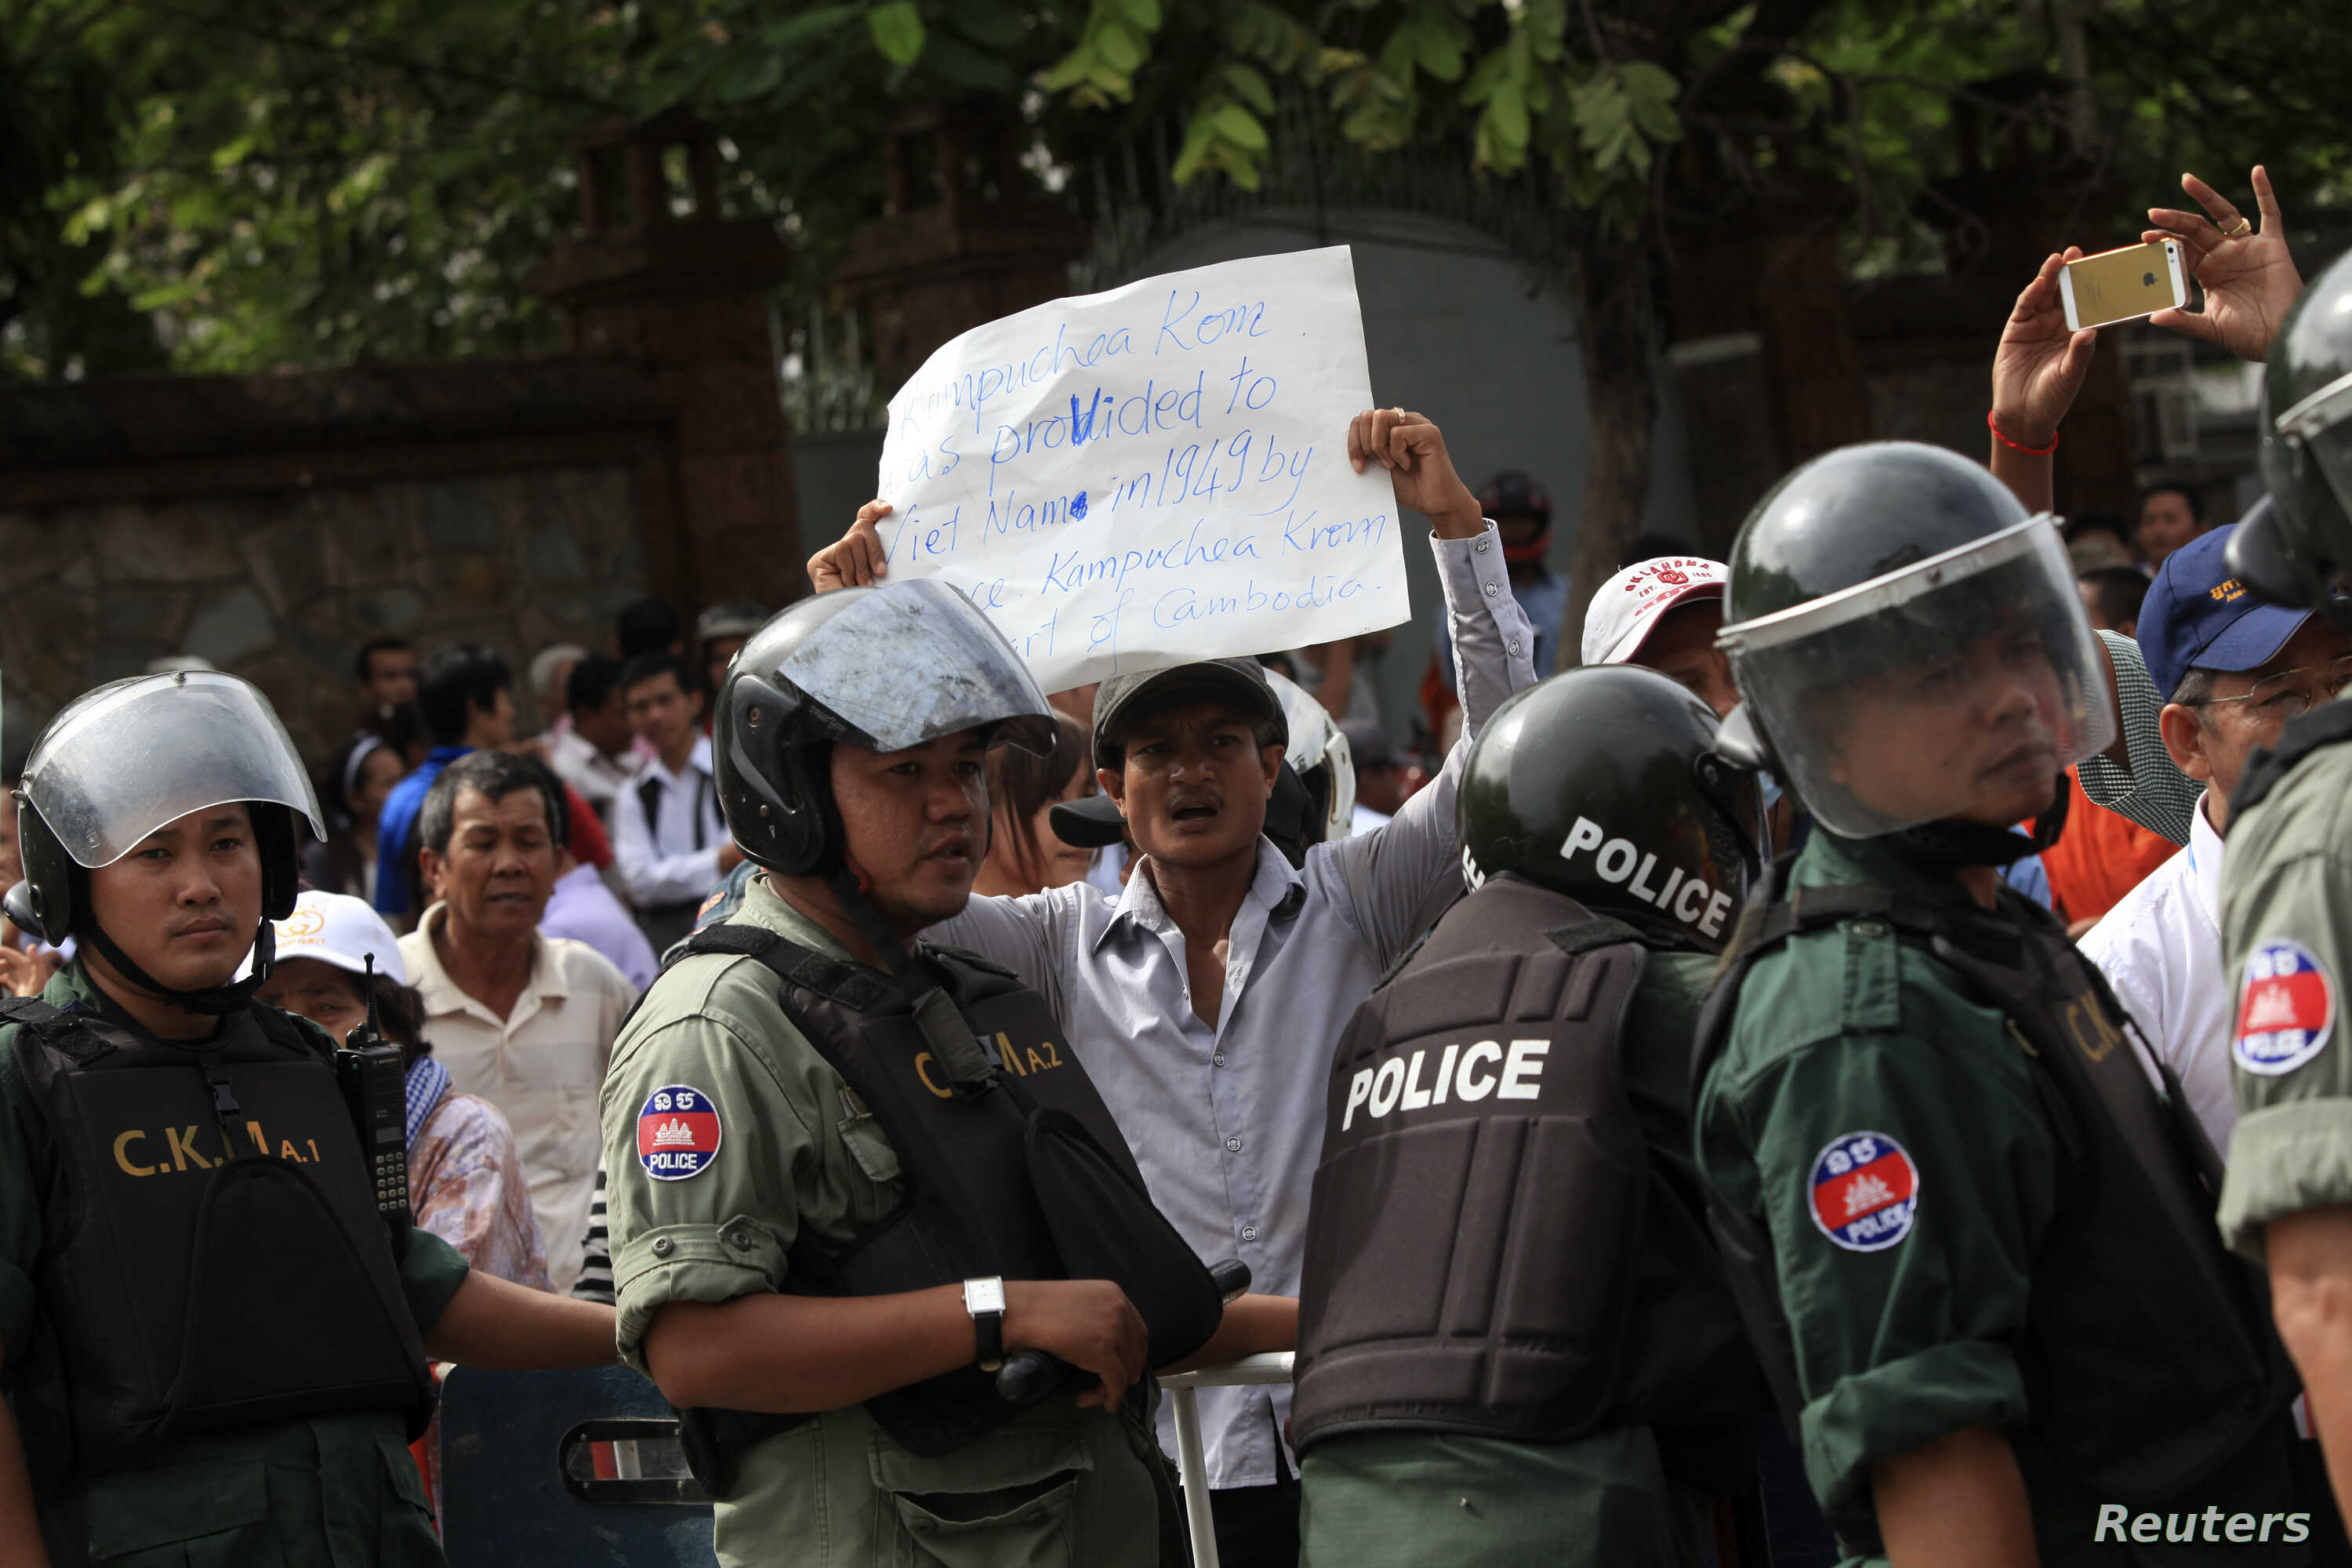 Protesters gather in front of the Vietnamese embassy during demonstration, Phnom Penh, July 8, 2014.